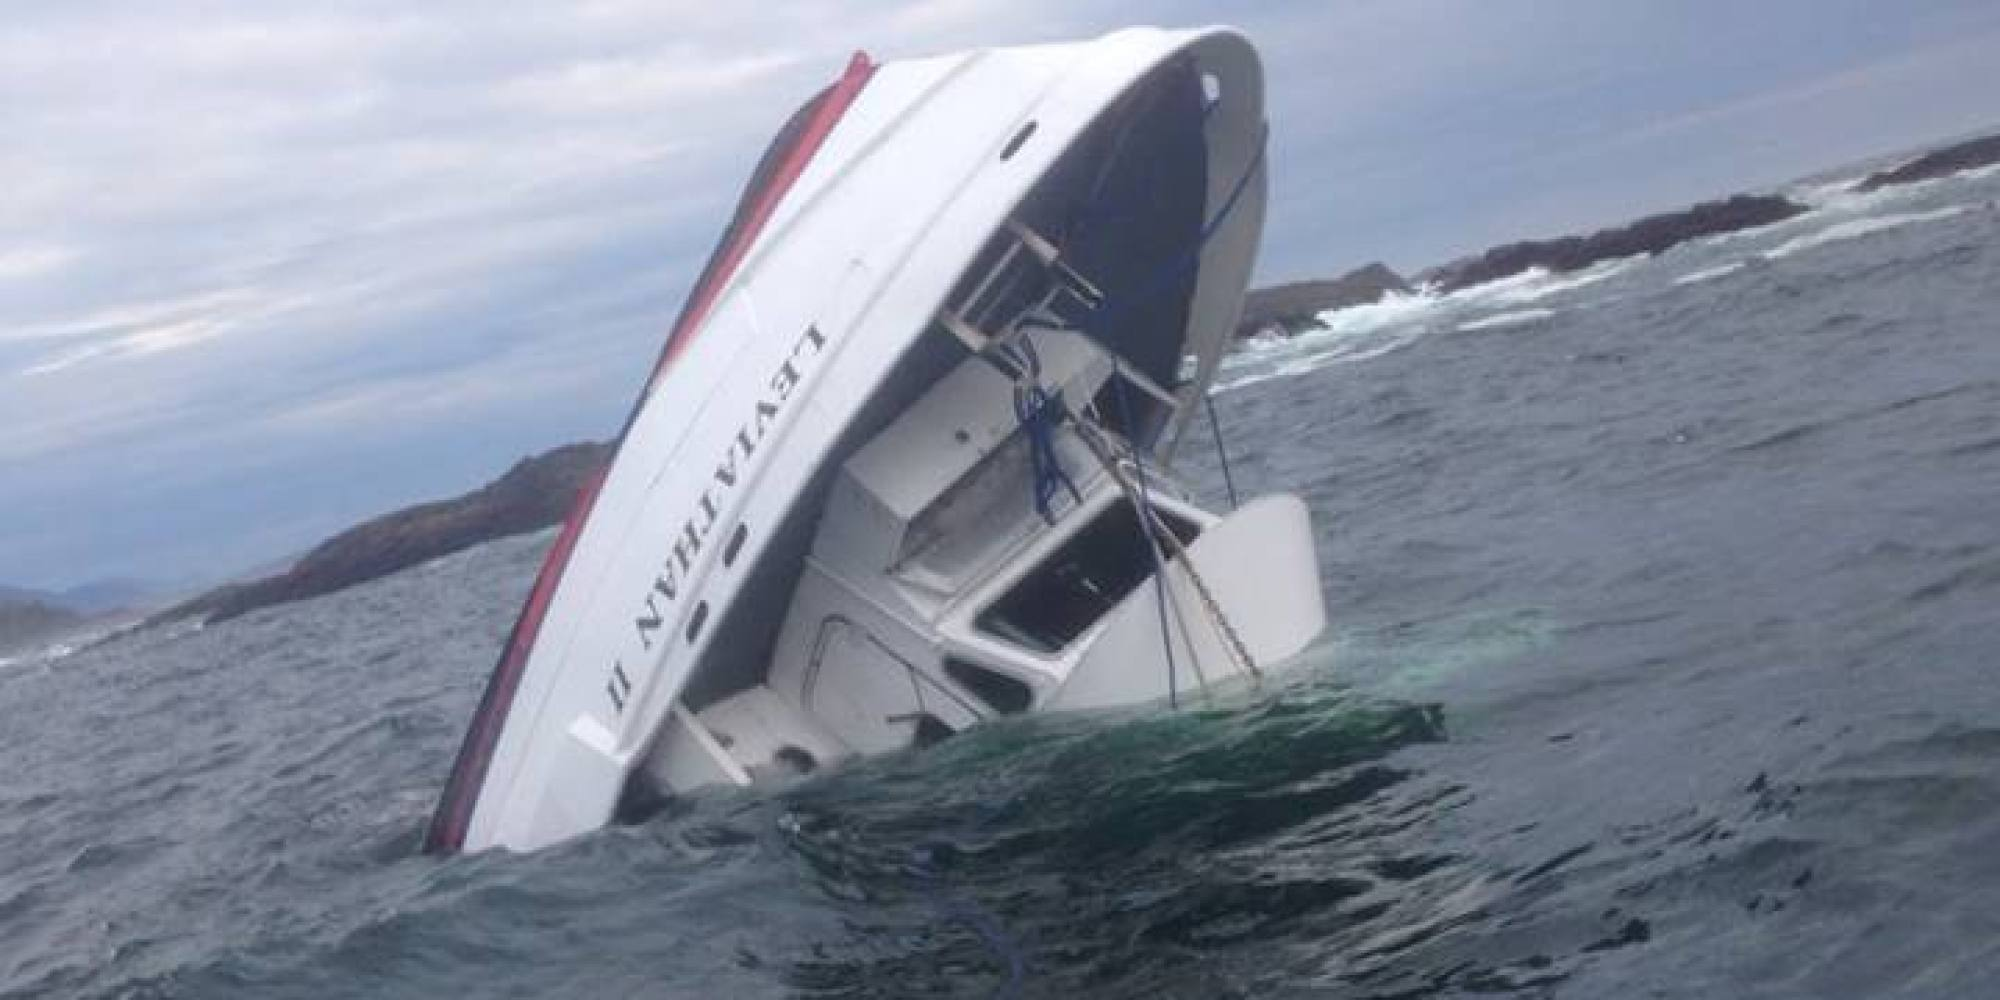 Tofino Whale Watching Boat Knocked Over By Giant Wave Calgary Man